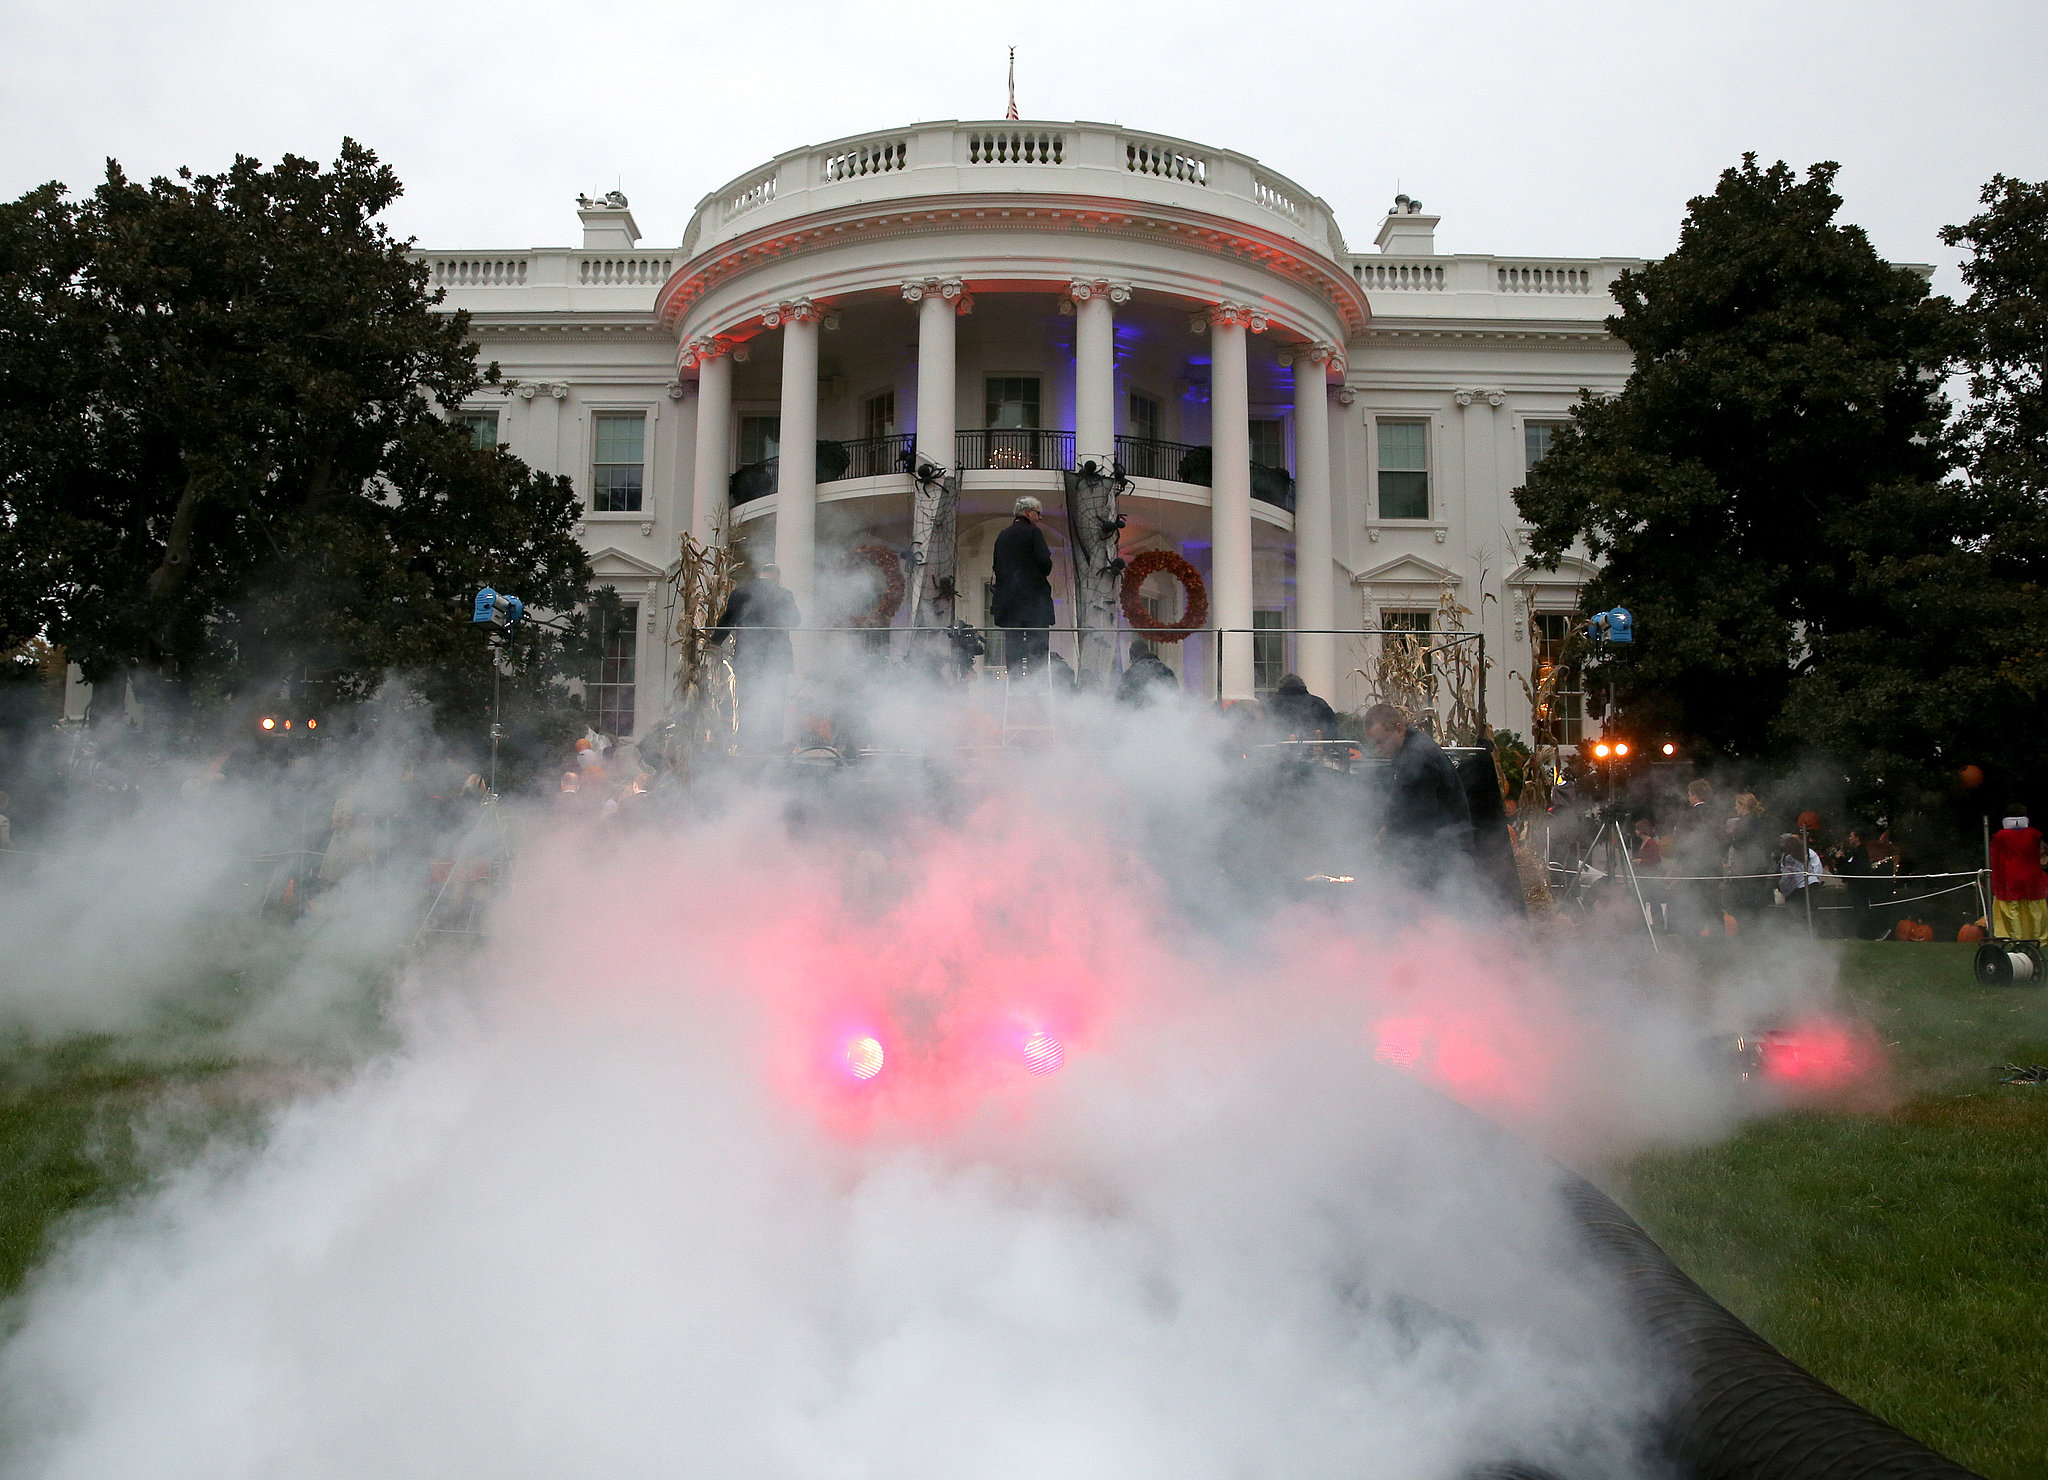 Fake smoke filled the lawn, making the White House look haunted.